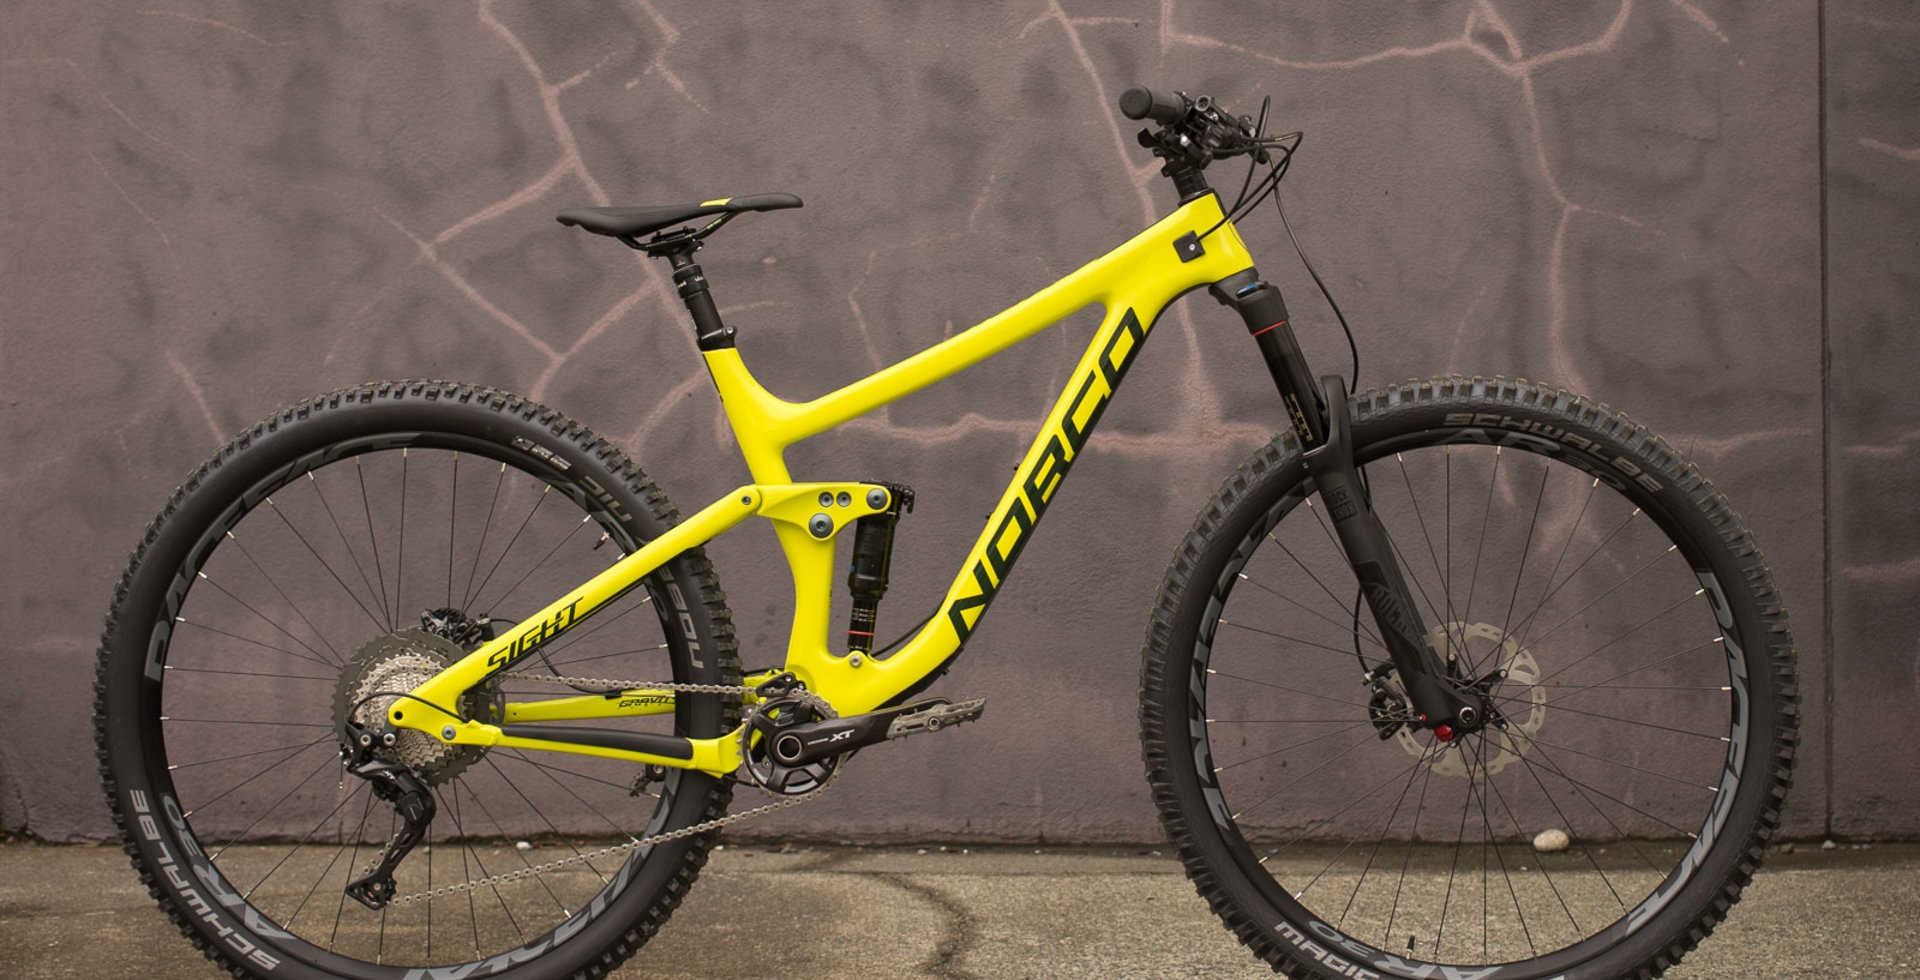 Norco's redesigned Sight features an extra short rear end and low bottom-bracket height, engineered to handle both rowdy descents and demanding climbs.